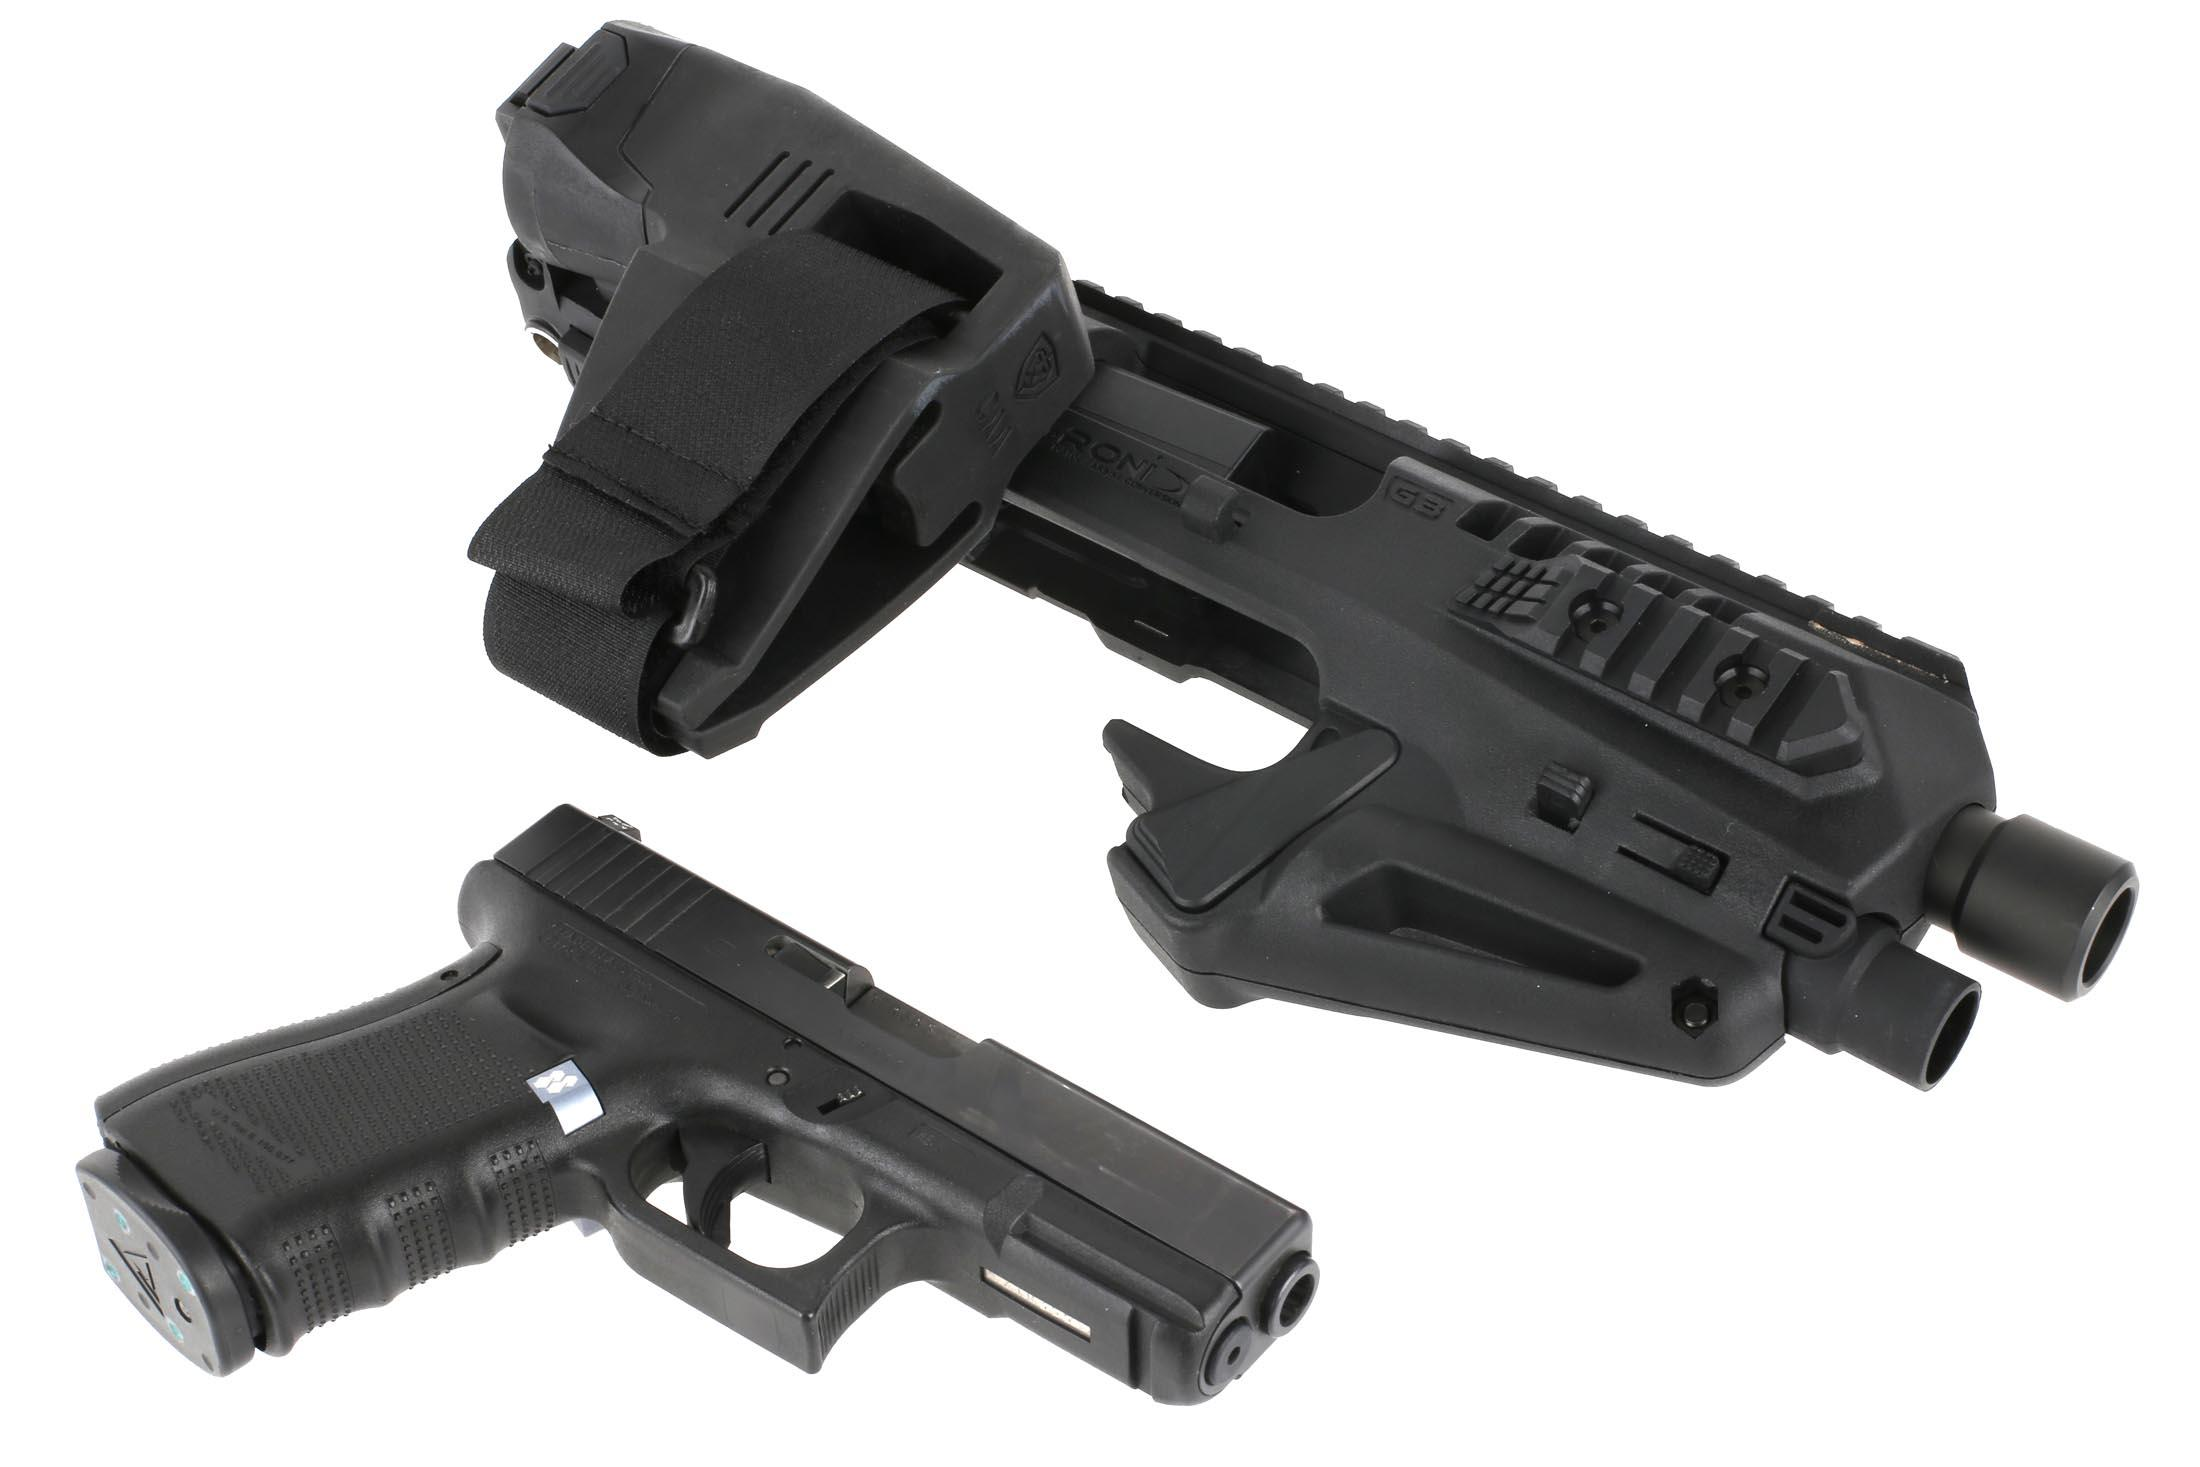 CAA Micro RONI 19 with Stabilizer - for Glock 19,23,32 - Black